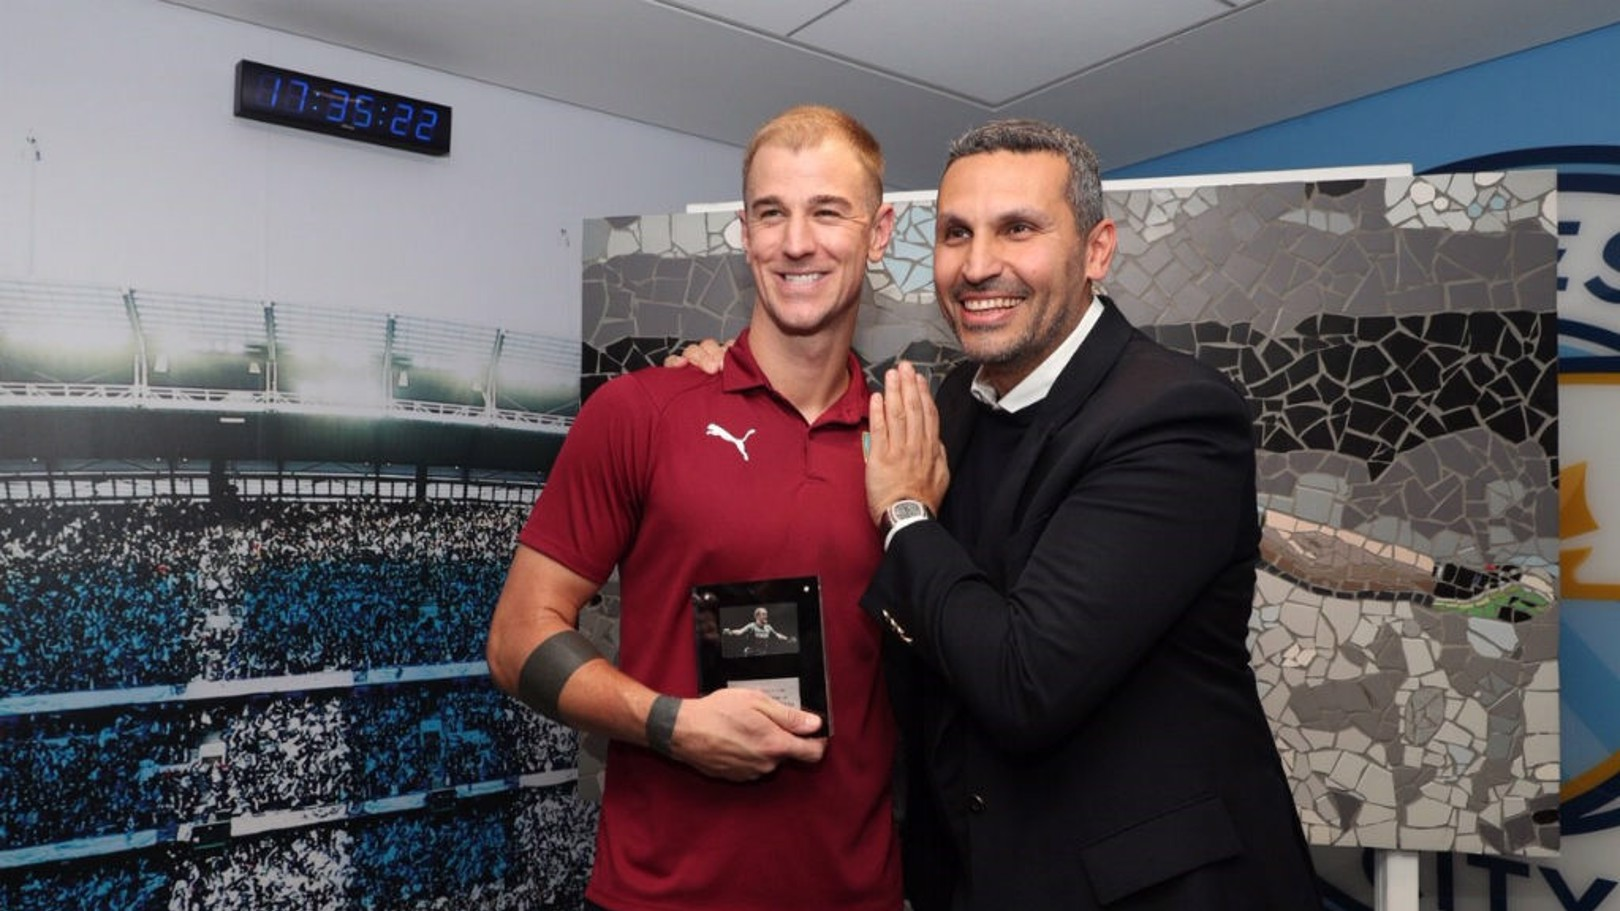 SPECIAL TRIBUTE: Manchester City chairman Khaldoon Al Mubarak presents Joe Hart with a lifetime seasoncard and special replica mosaic